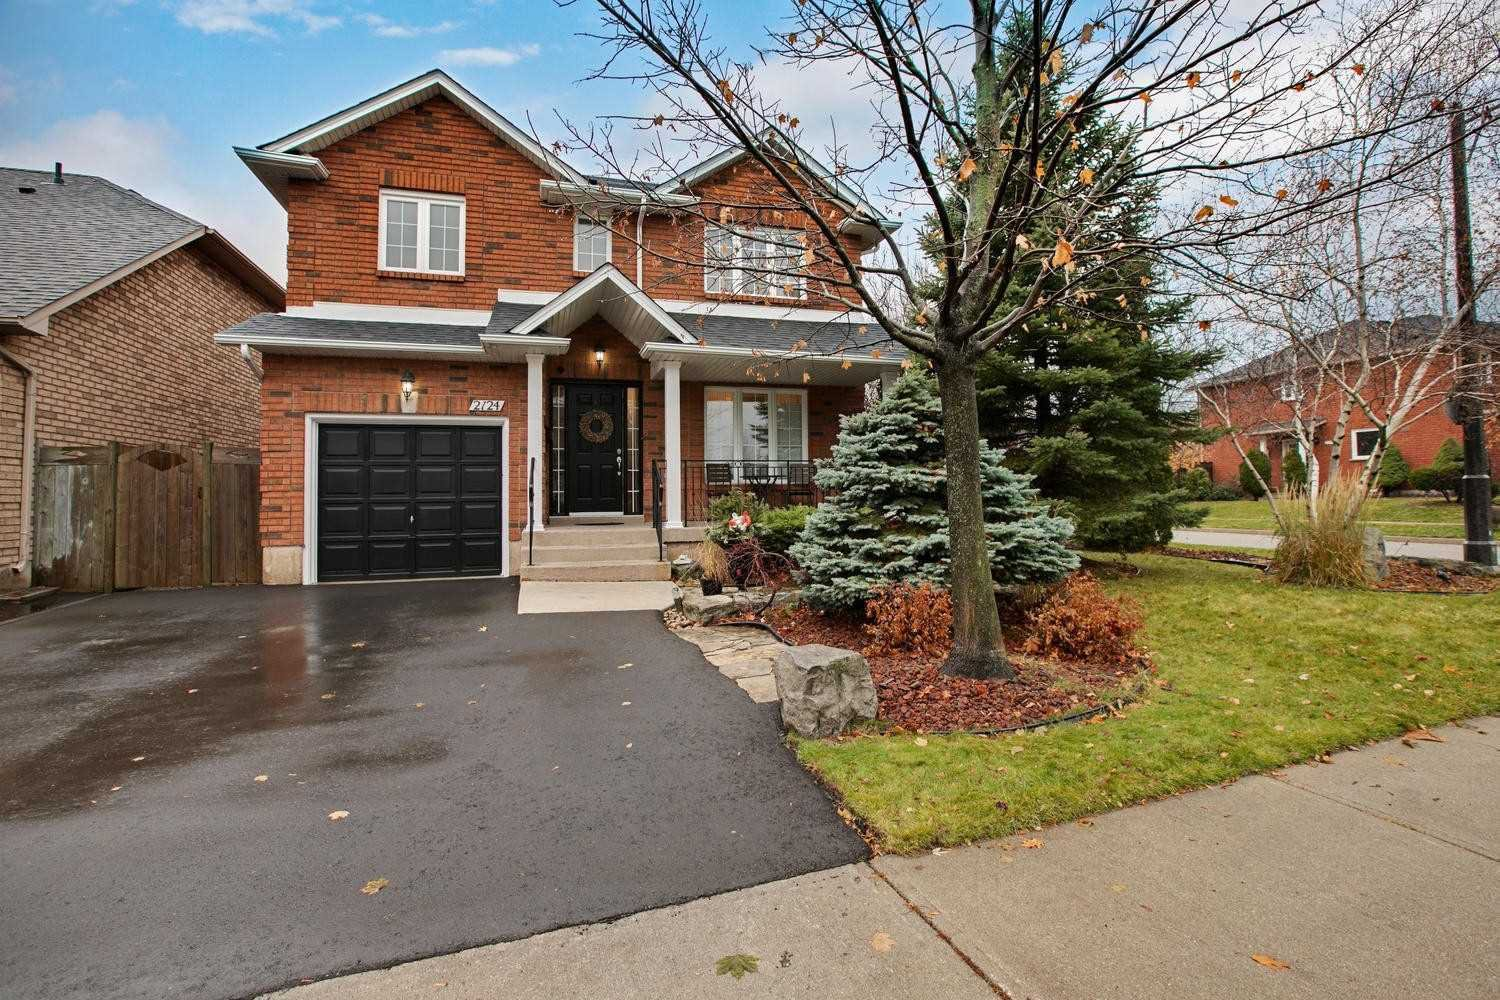 Main Photo: 2124 Shorncliffe Boulevard in Oakville: West Oak Trails House (2-Storey) for sale : MLS®# W4644126